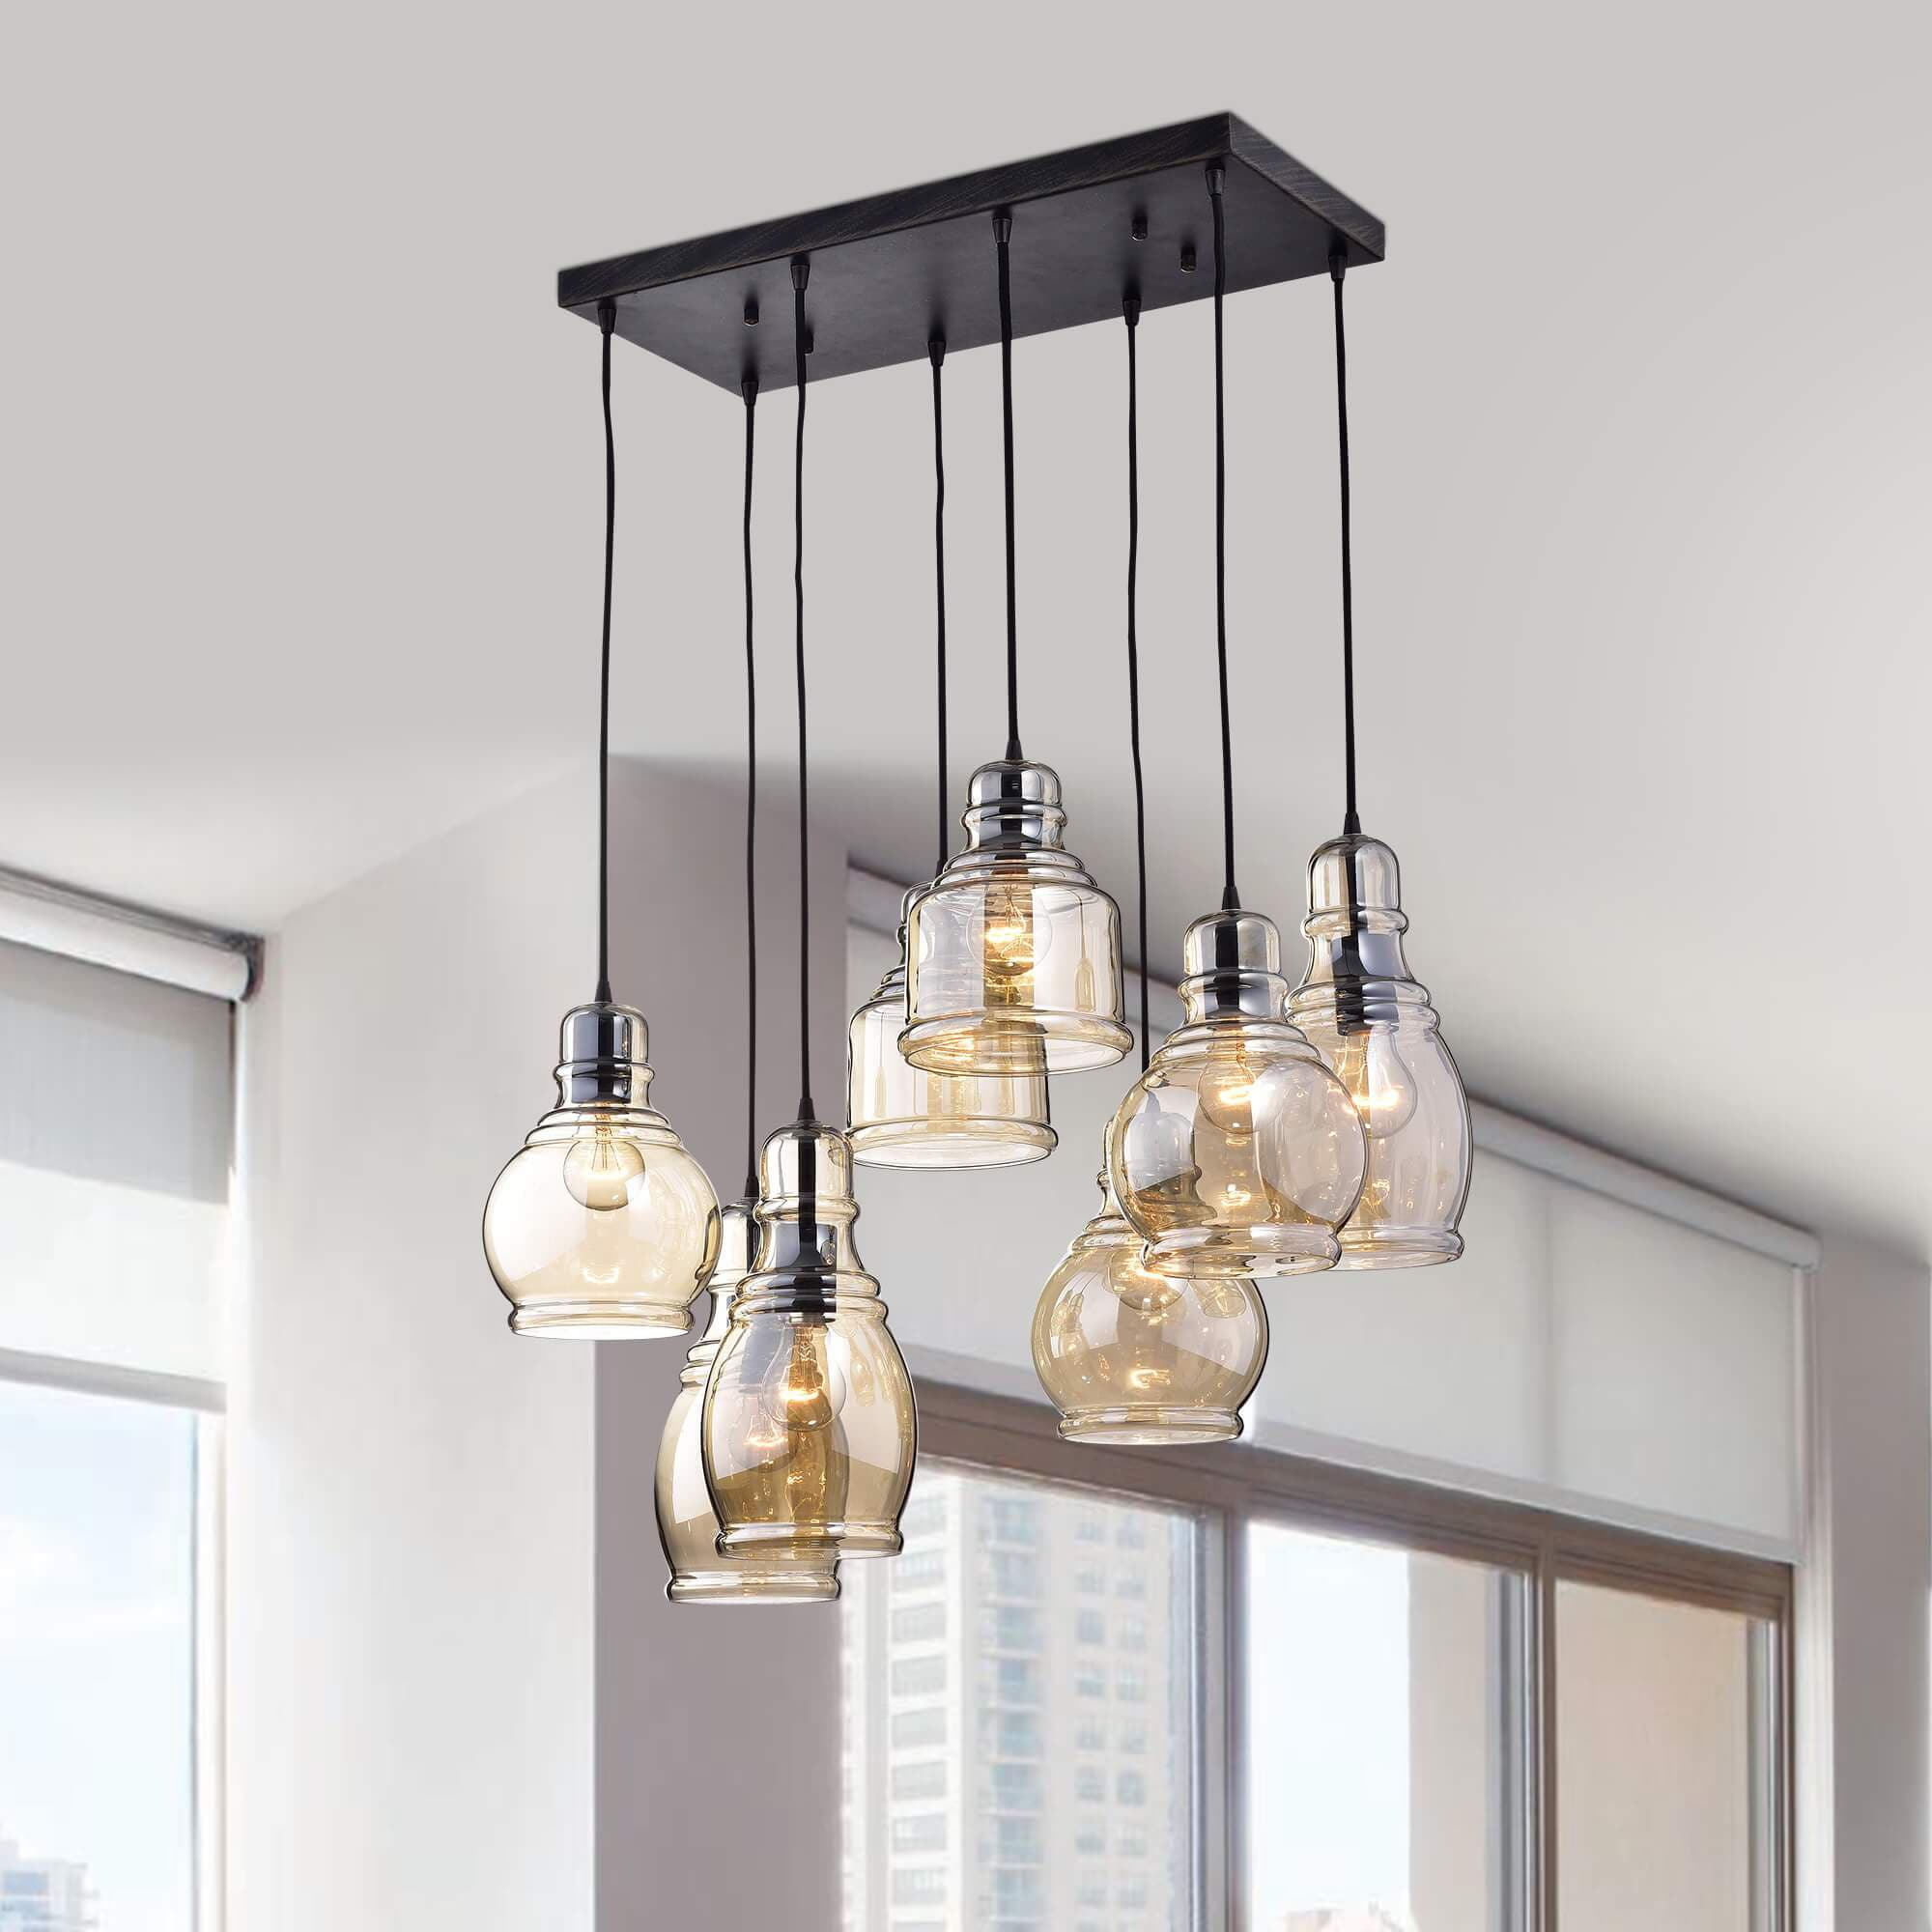 Strick Bolton Yinka Antique Gl Pendant Lights